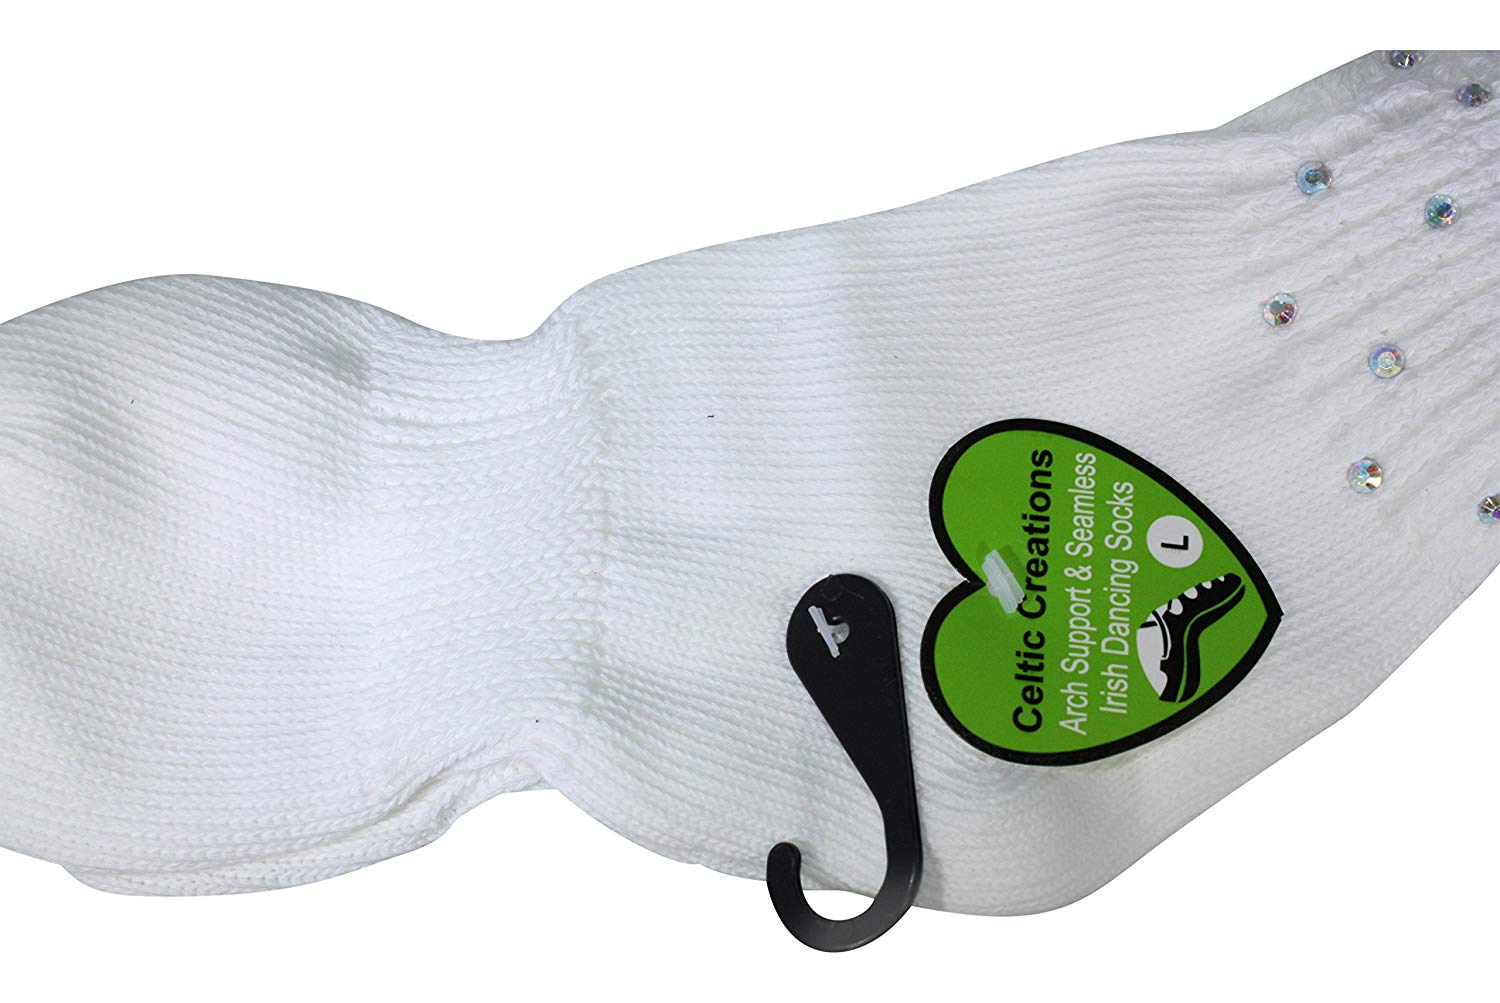 IRISH DANCE SOCKS ANKLE Length Arch Support Seamless Poodle Socks 6 to 9 years